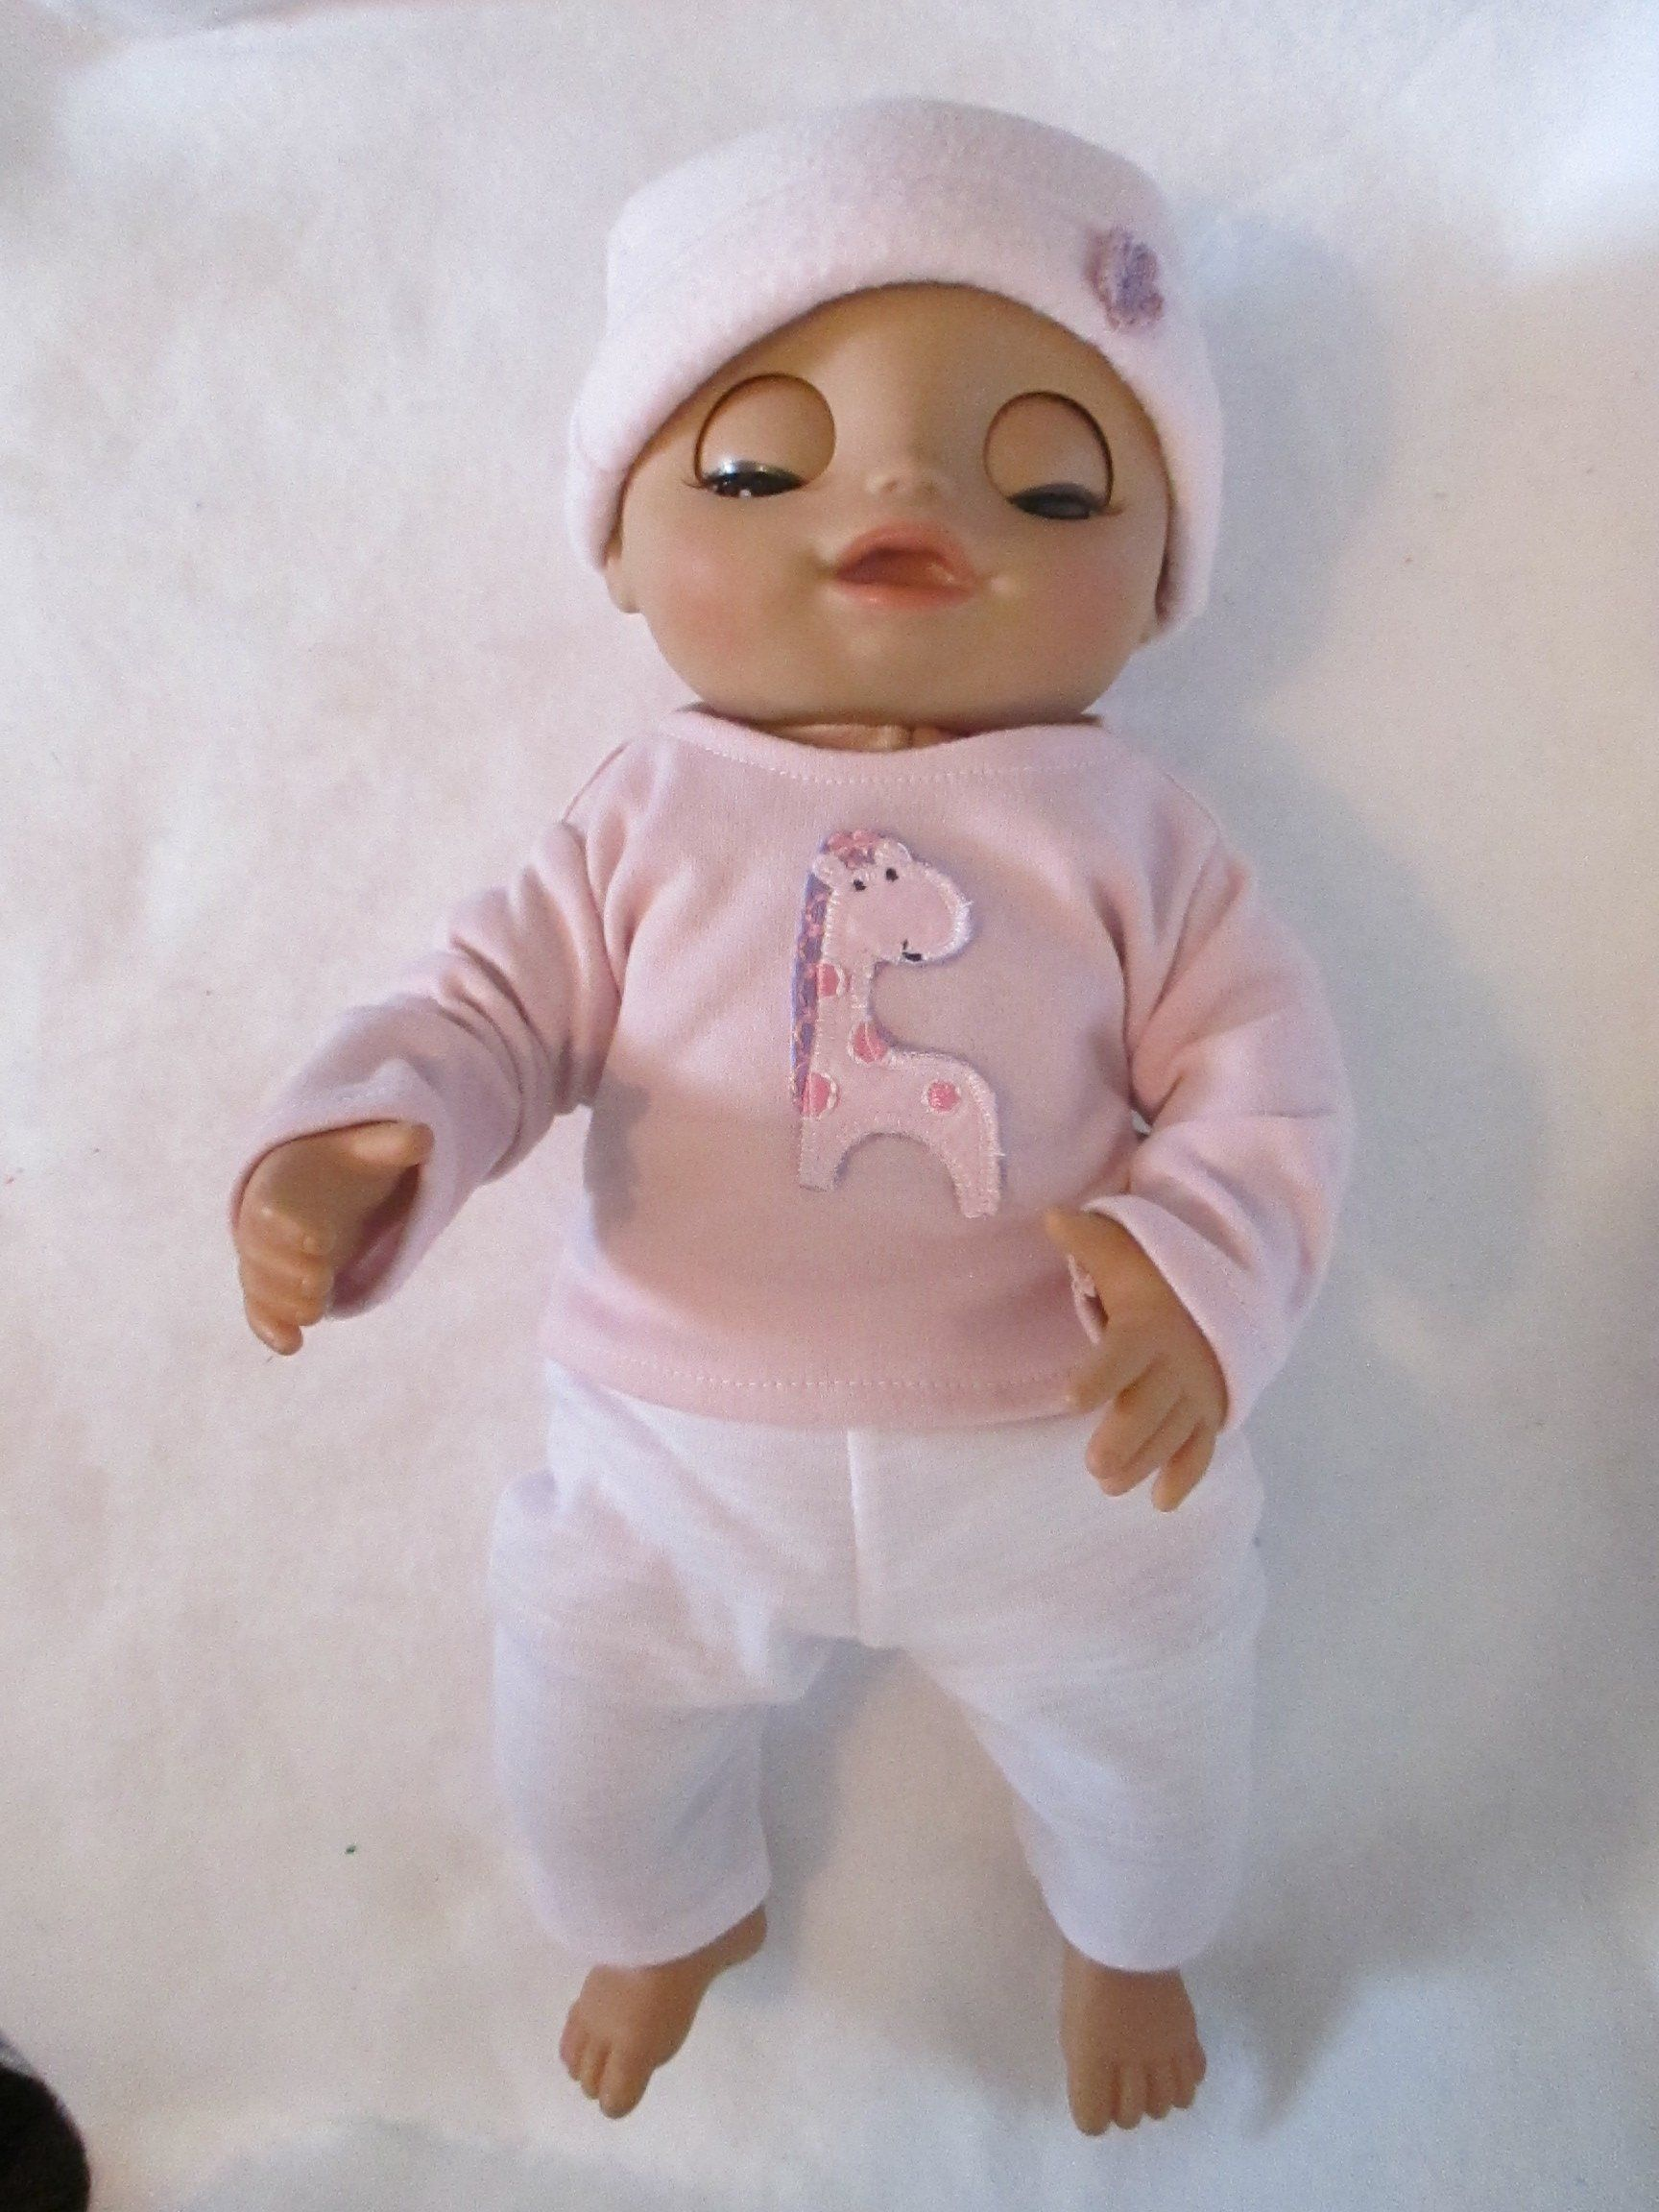 Pin On Baby Alive Dolls